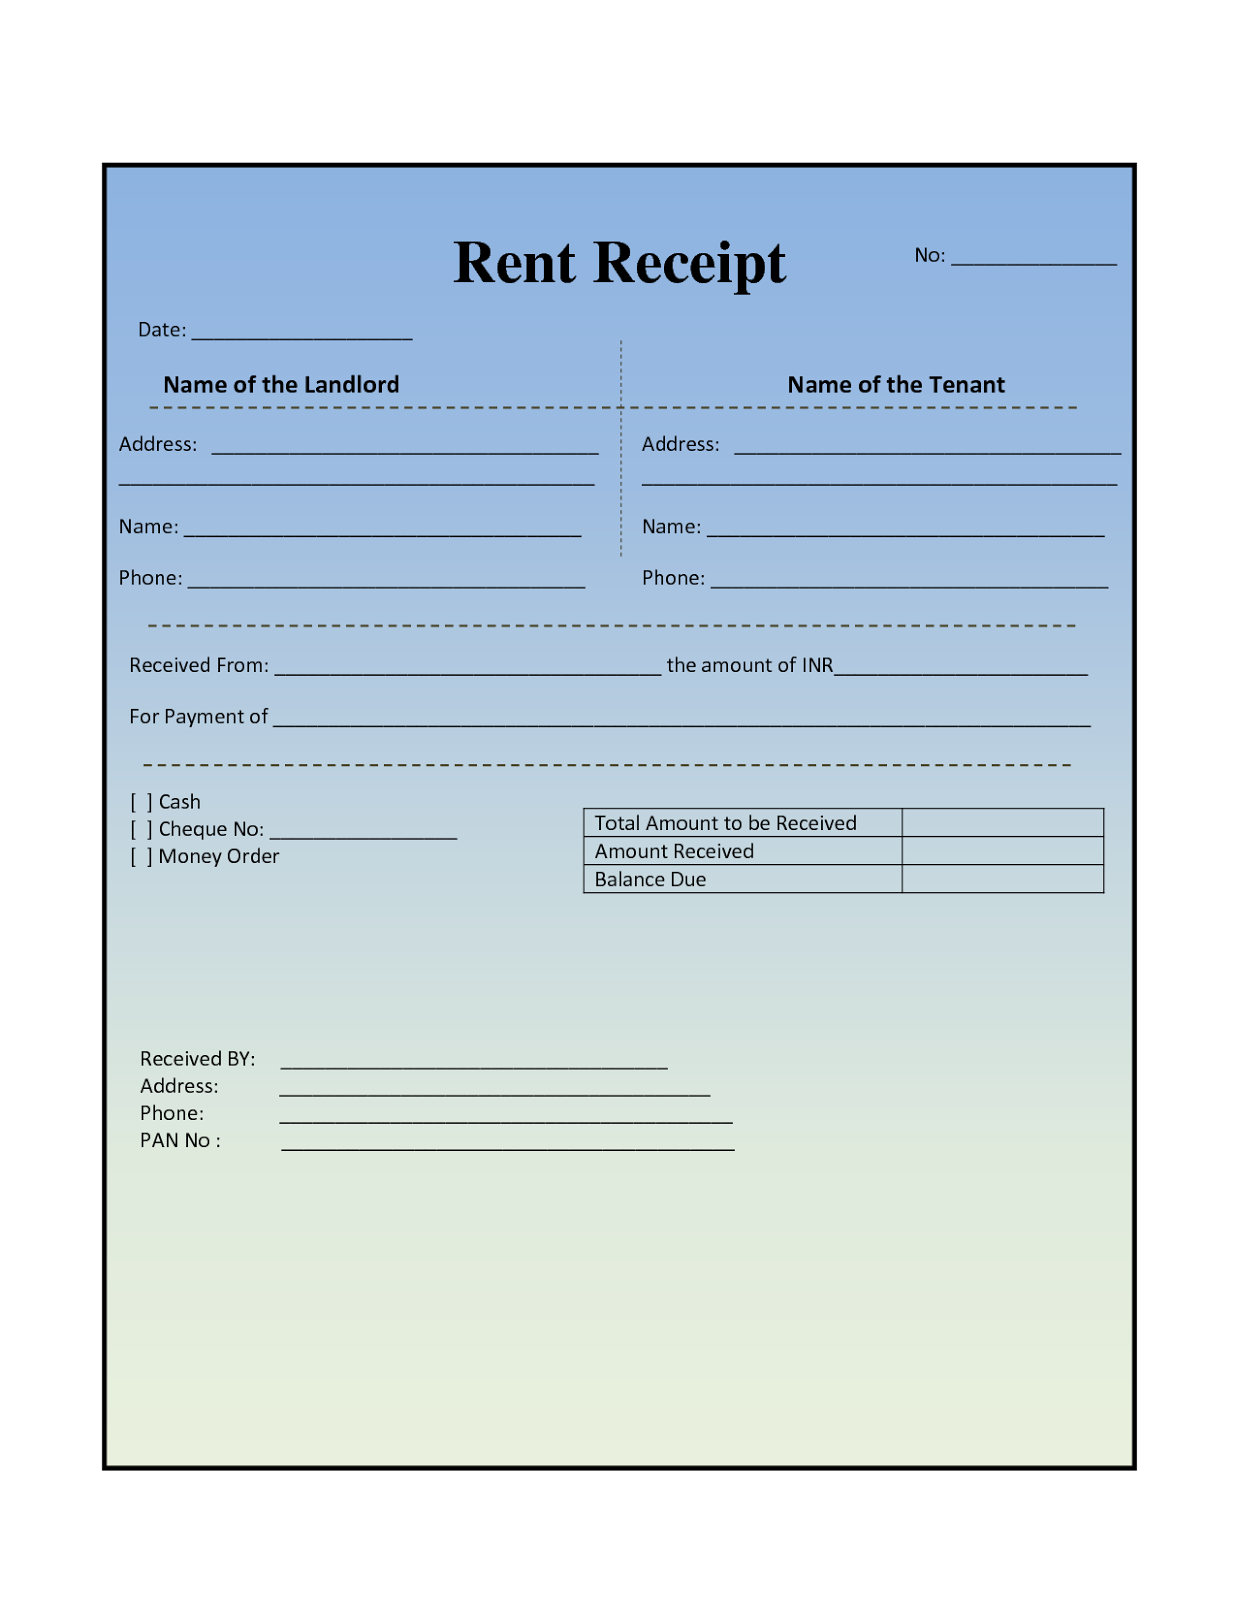 rent receipt template doc resume example rent receipt template doc use case templatedoc techno solutions house rental invoice template in excel format